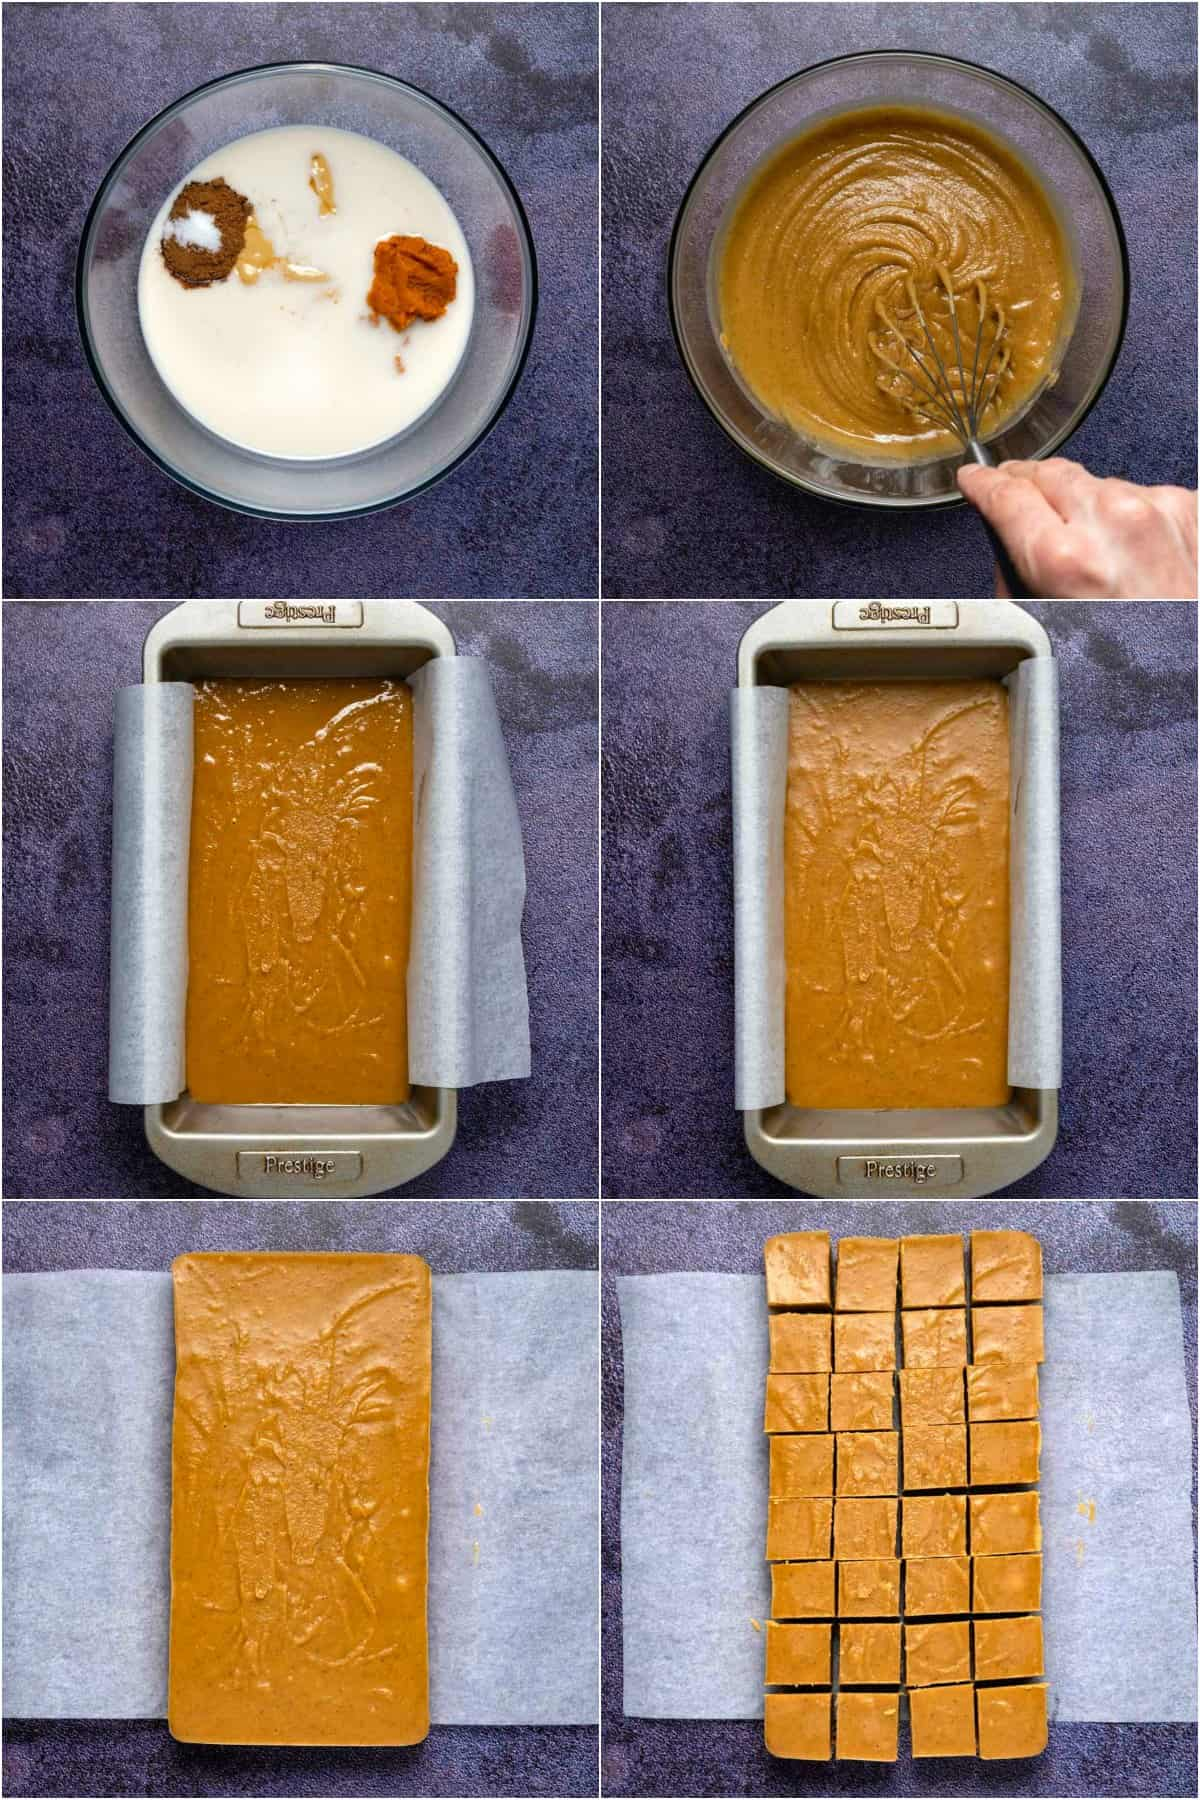 Step by step process photo collage of making pumpkin fudge.